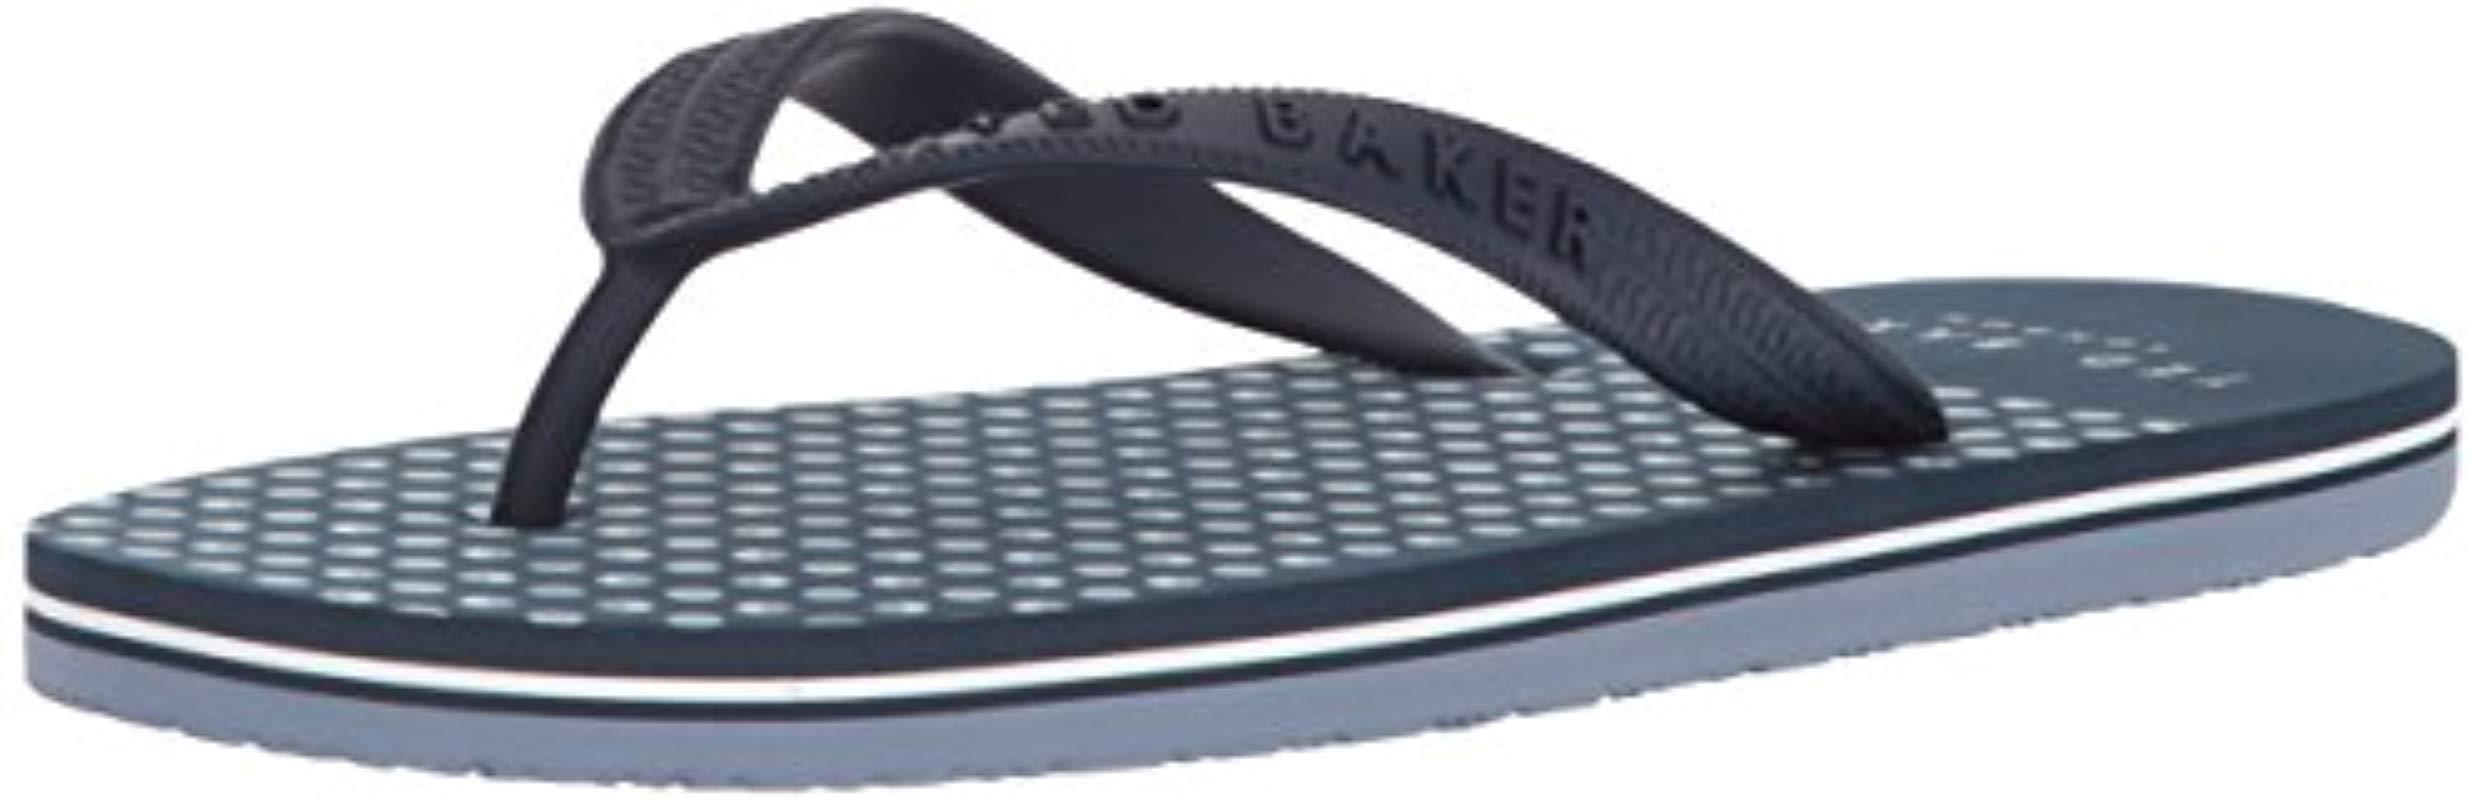 efc12a1f4 Lyst - Ted Baker Rubber Flip Flops in Blue for Men - Save 49%